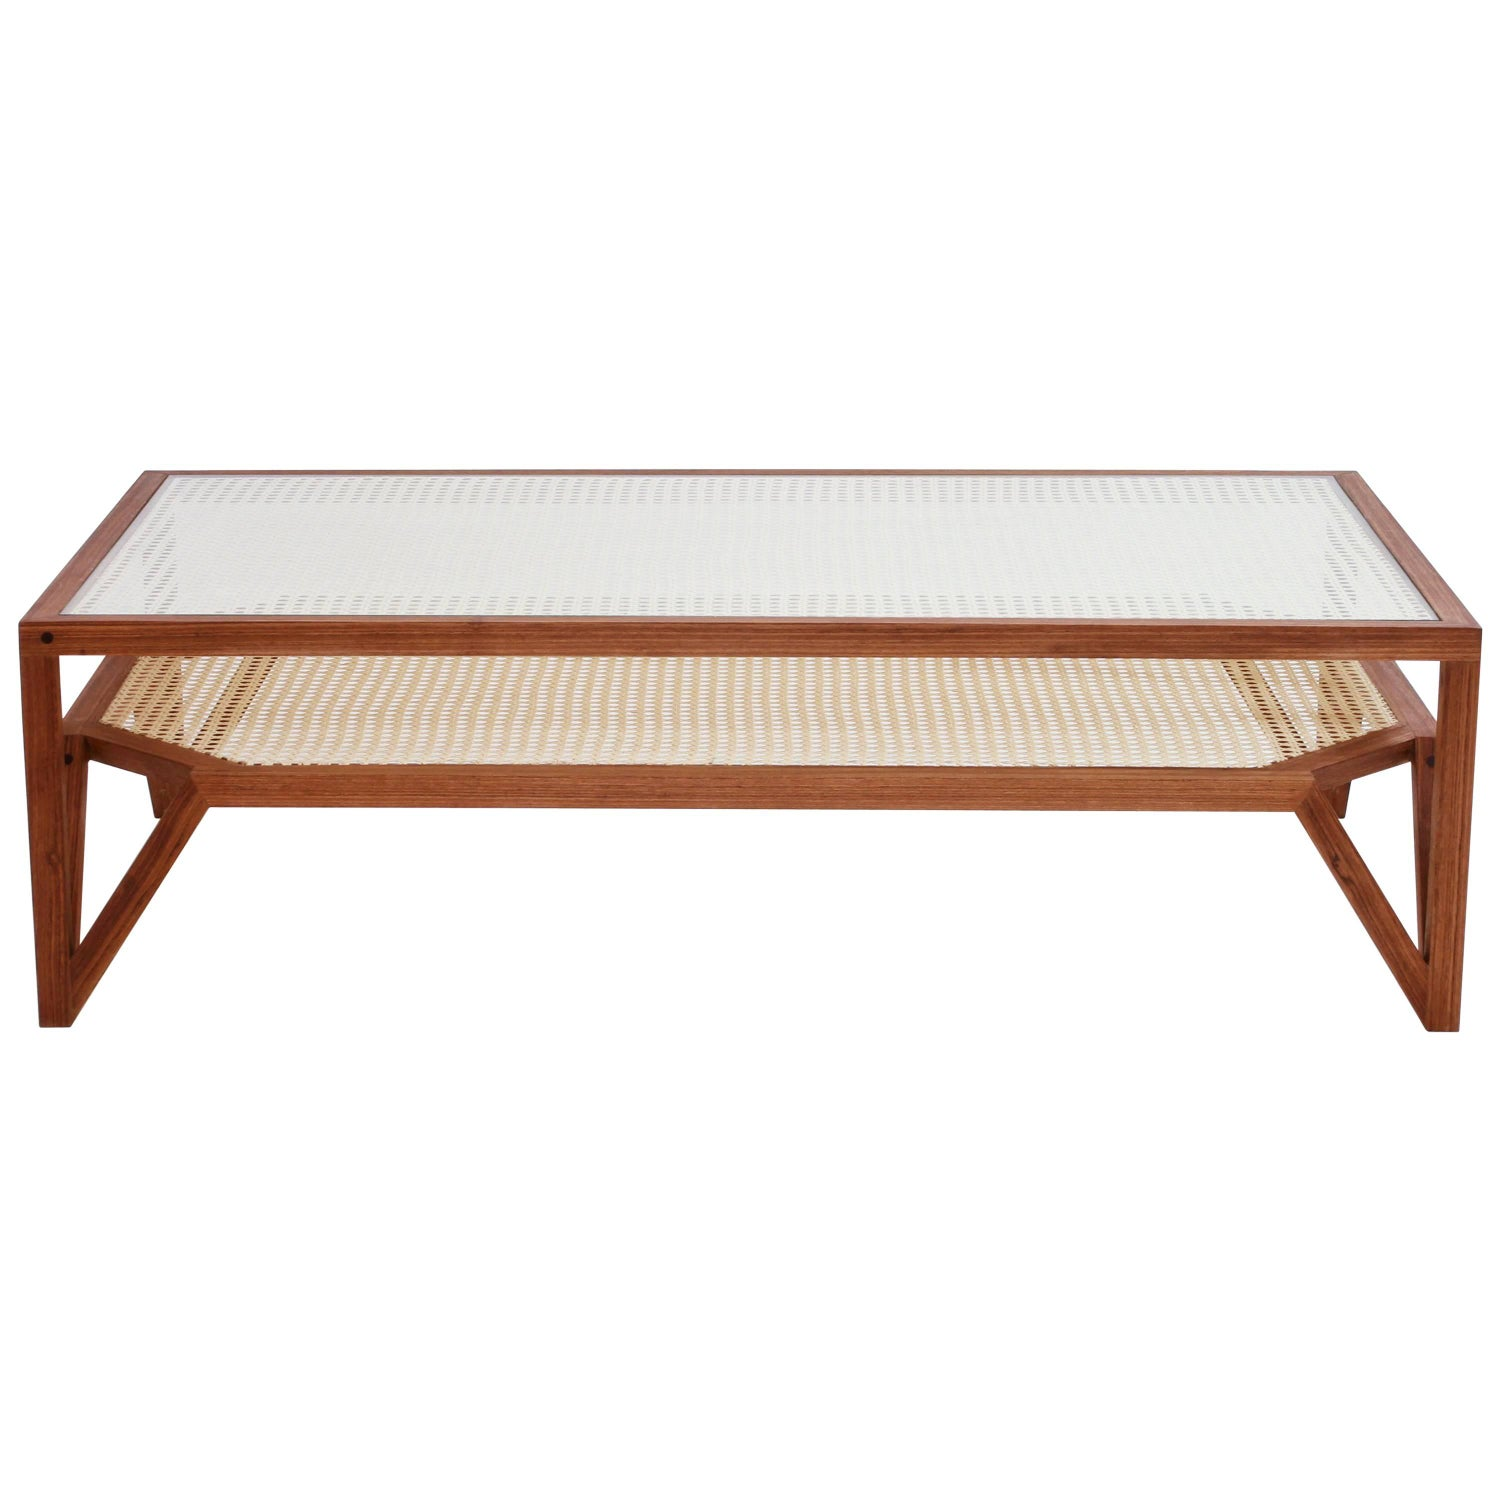 Moiré Wood And Cane Coffee Table By O Formigueiro